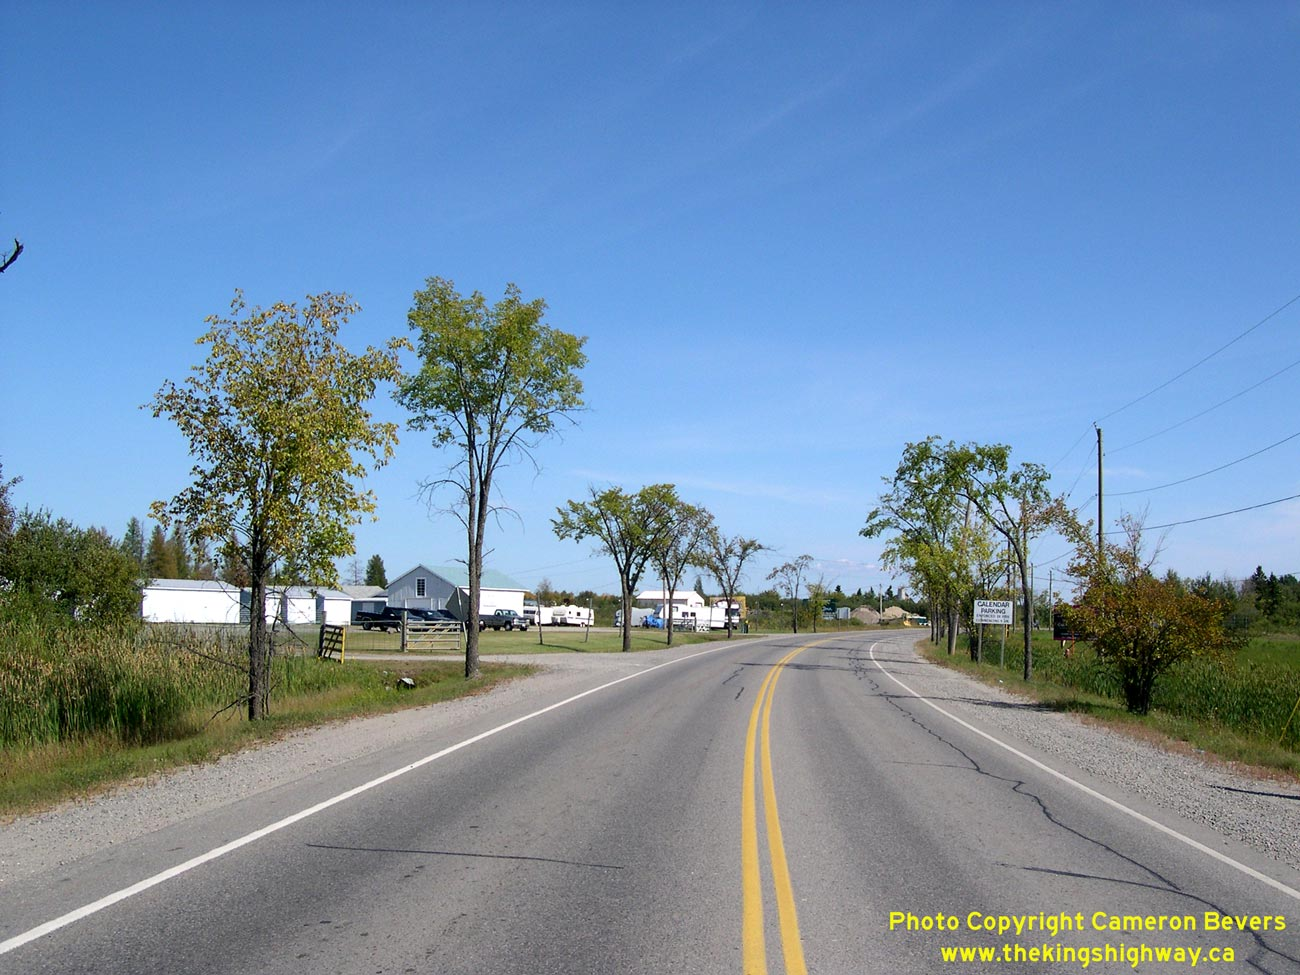 Ontario Highway 11 Photographs - Page 36 - History of Ontario's